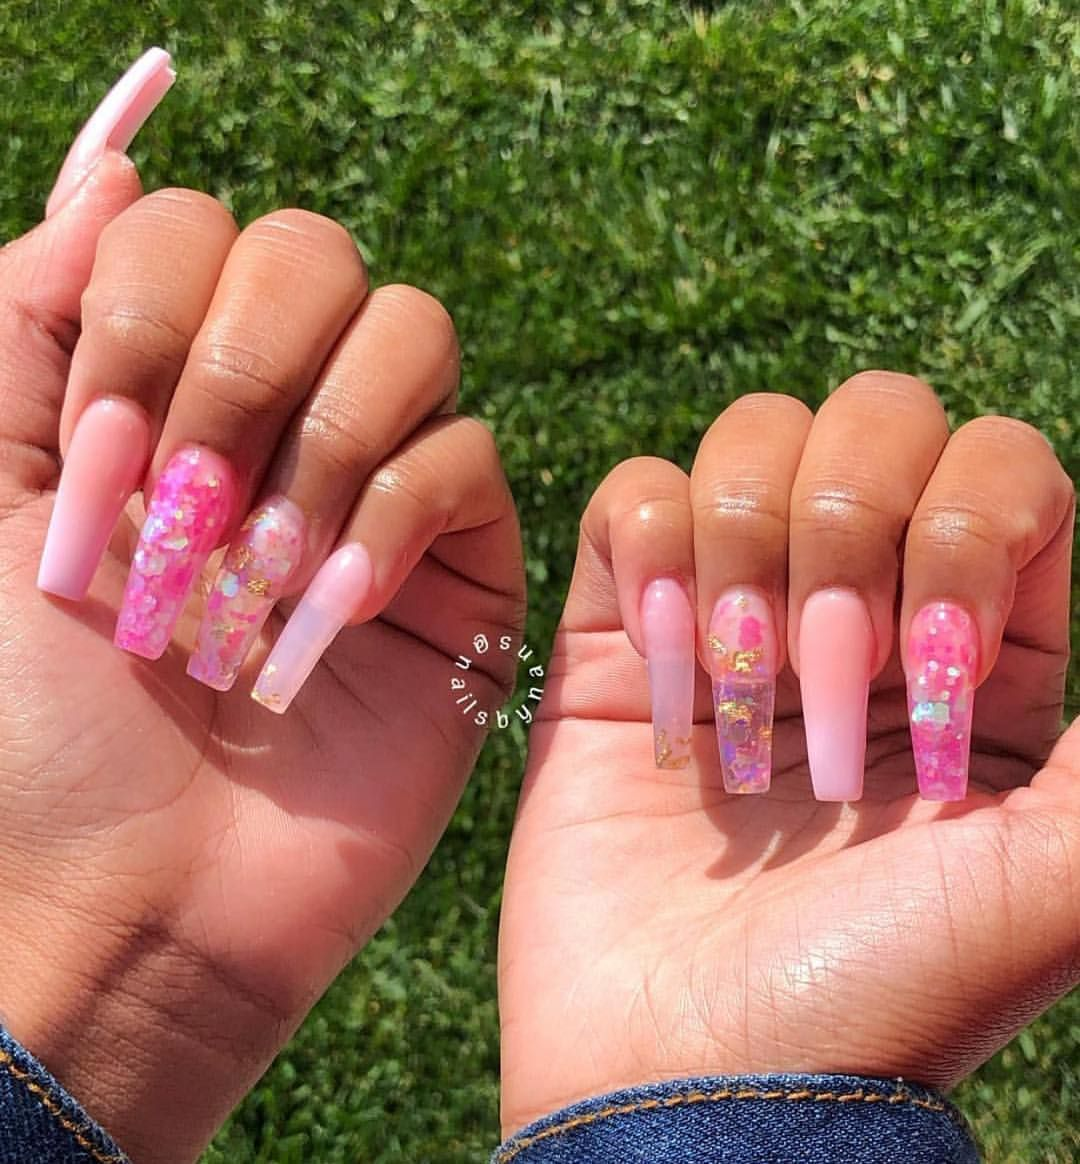 Good Morning Beautiful People Do You Know How Much Of This Is Crochet All Of It Except That Bra Basic Nails Long Acrylic Nails Pretty Acrylic Nails